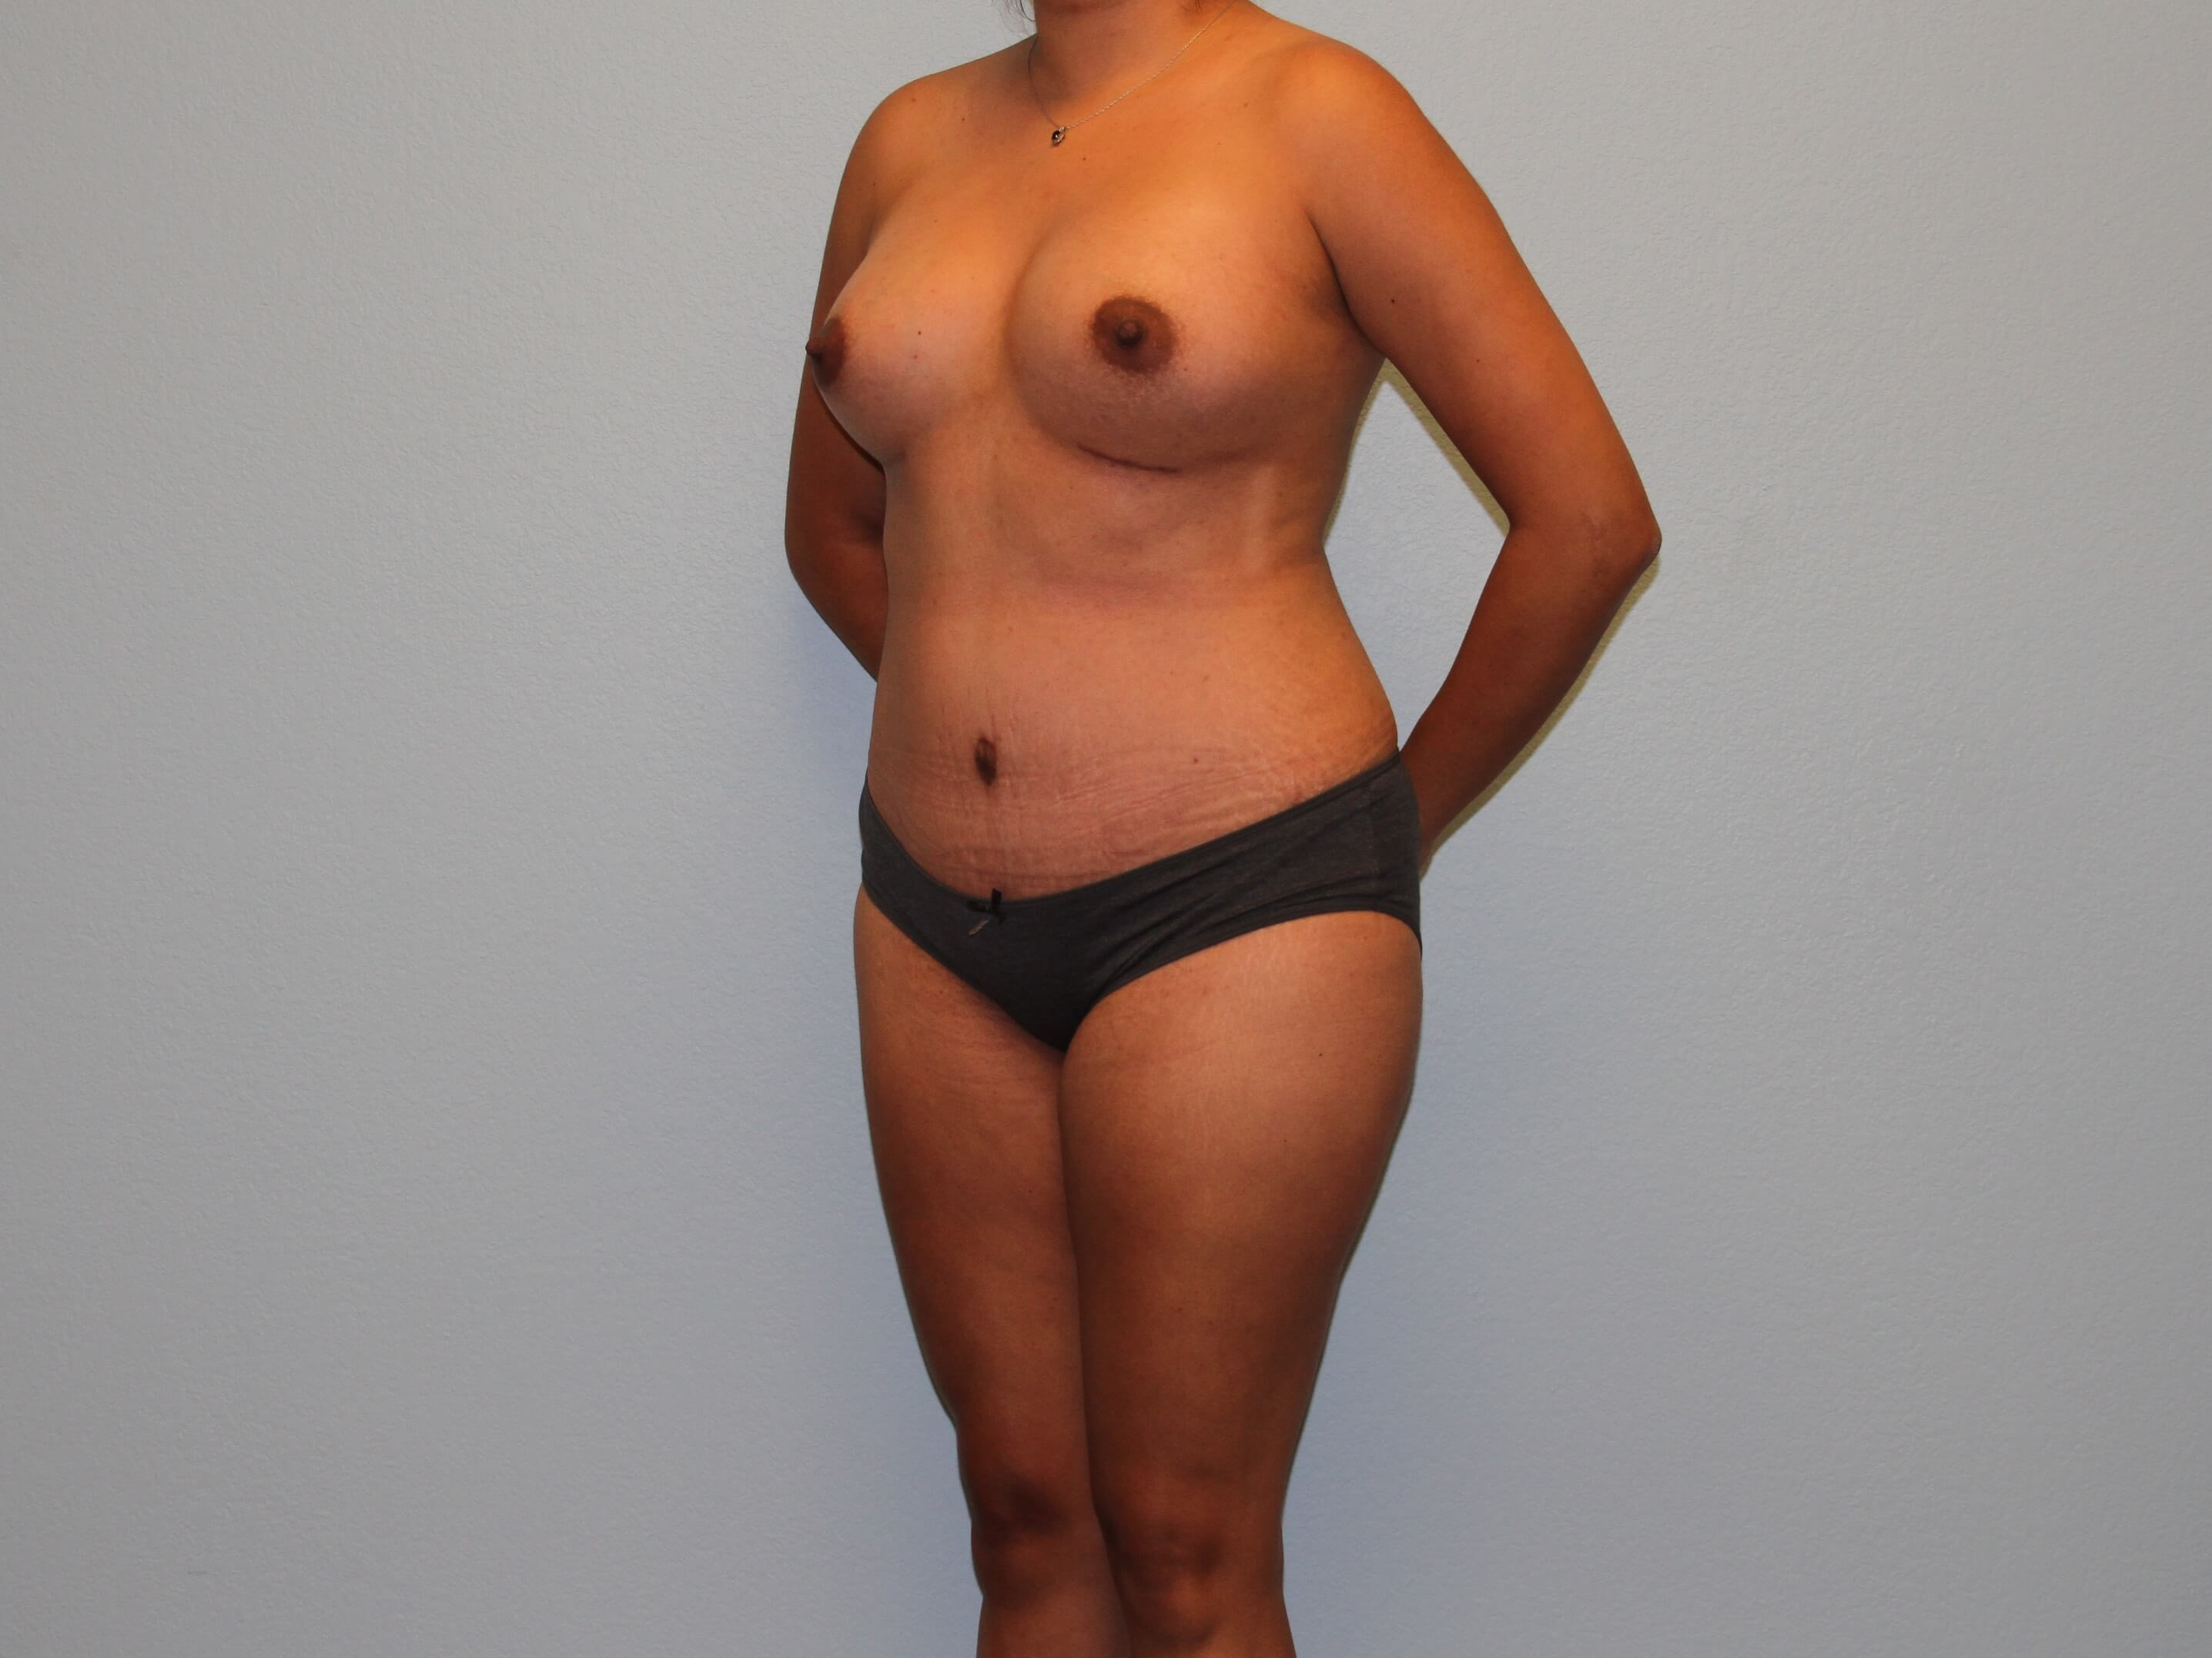 Oblique View Post-op 3 Months